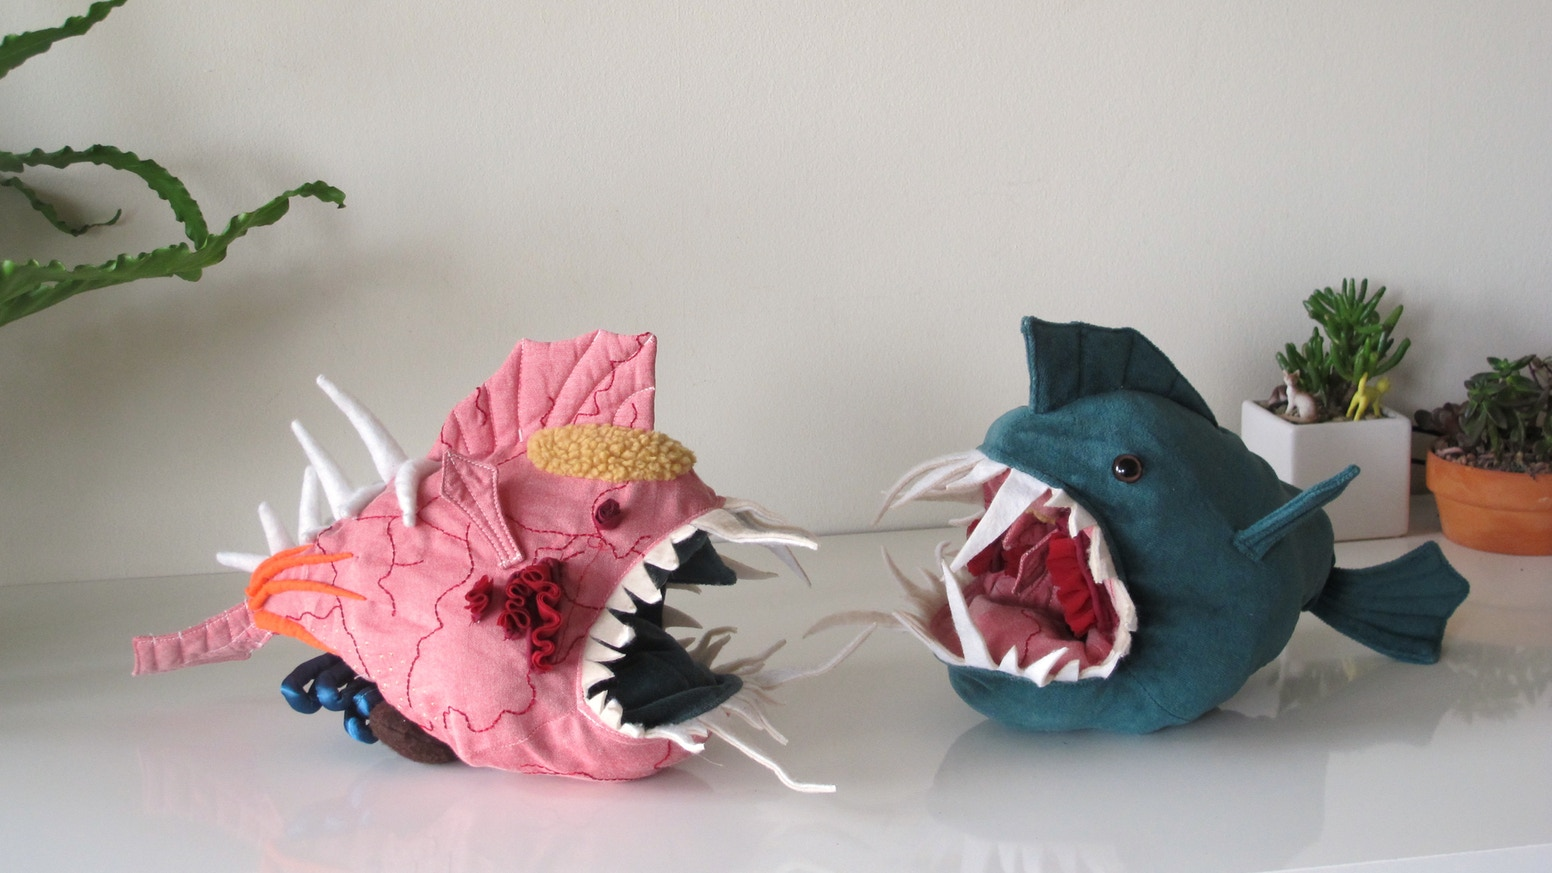 Morris, an interactive stuffed animal that encourages you to turn it inside out and explore its innards.